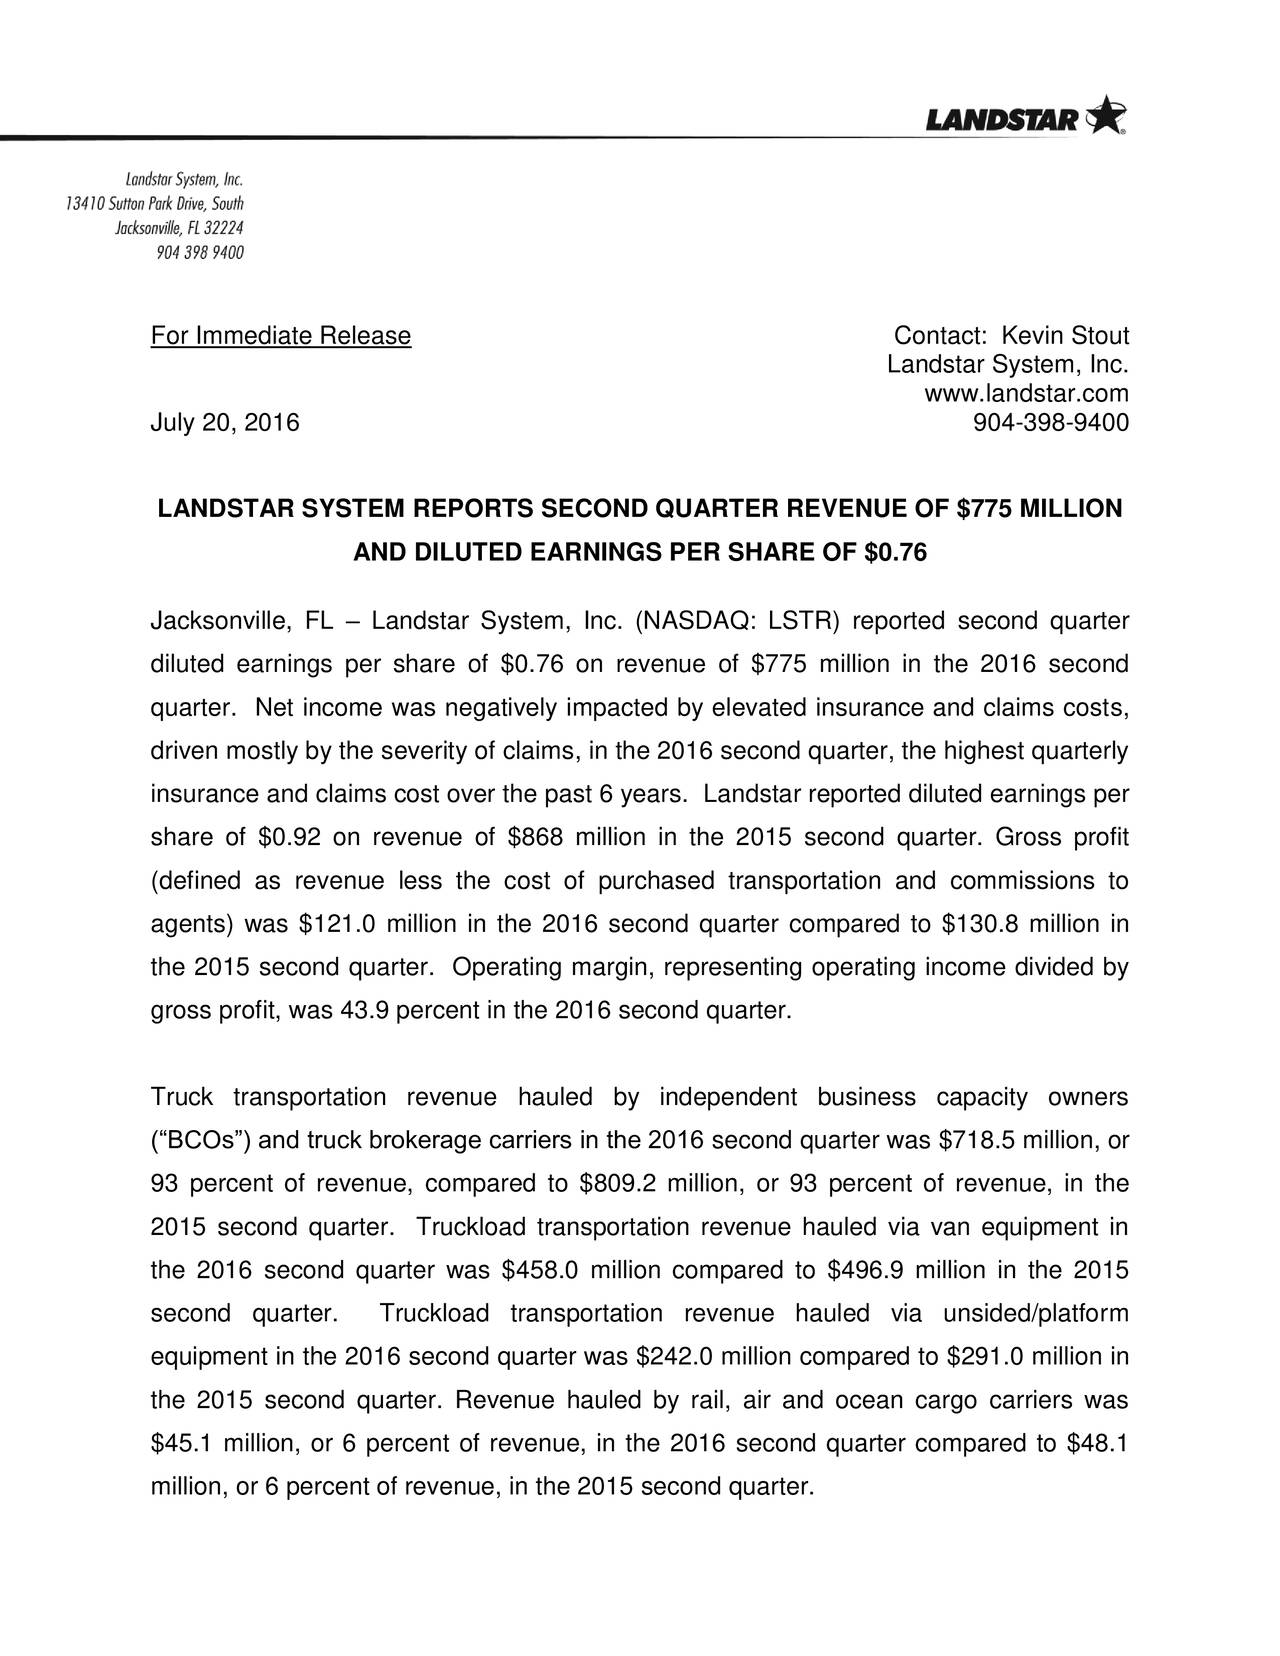 Landstar System, Inc. www.landstar.com July 20, 2016 904-398-9400 LANDSTAR SYSTEM REPORTS SECOND QUARTER REVENUE OF $775 MILLION AND DILUTED EARNINGS PER SHARE OF $0.76 Jacksonville, FL  Landstar System, Inc. (NASDAQ: LSTR) reported second quarter diluted earnings per share of $0.76 on revenue of $775 million in the 2016 second quarter. Net income was negatively impacted by elevated insurance and claims costs, driven mostly by the severity of claims, in the 2016 second quarter, the highest quarterly insurance and claims cost over the past 6 years. Landstar reported diluted earnings per share of $0.92 on revenue of $868 million in the 2015 second quarter. Gross profit (defined as revenue less the cost of purchased transportation and commissions to agents) was $121.0 million in the 2016 second quarter compared to $130.8 million in the 2015 second quarter. Operating margin, representing operating income divided by gross profit, was 43.9 percent in the 2016 second quarter. Truck transportation revenue hauled by independent business capacity owners (BCOs) and truck brokerage carriers in the 2016 second quarter was $718.5 million, or 93 percent of revenue, compared to $809.2 million, or 93 percent of revenue, in the 2015 second quarter. Truckload transportation revenue hauled via van equipment in the 2016 second quarter was $458.0 million compared to $496.9 million in the 2015 second quarter. Truckload transportation revenue hauled via unsided/platform equipment in the 2016 second quarter was $242.0 million compared to $291.0 million in the 2015 second quarter. Revenue hauled by rail, air and ocean cargo carriers was $45.1 million, or 6 percent of revenue, in the 2016 second quarter compared to $48.1 million, or 6 percent of revenue, in the 2015 second quarter.